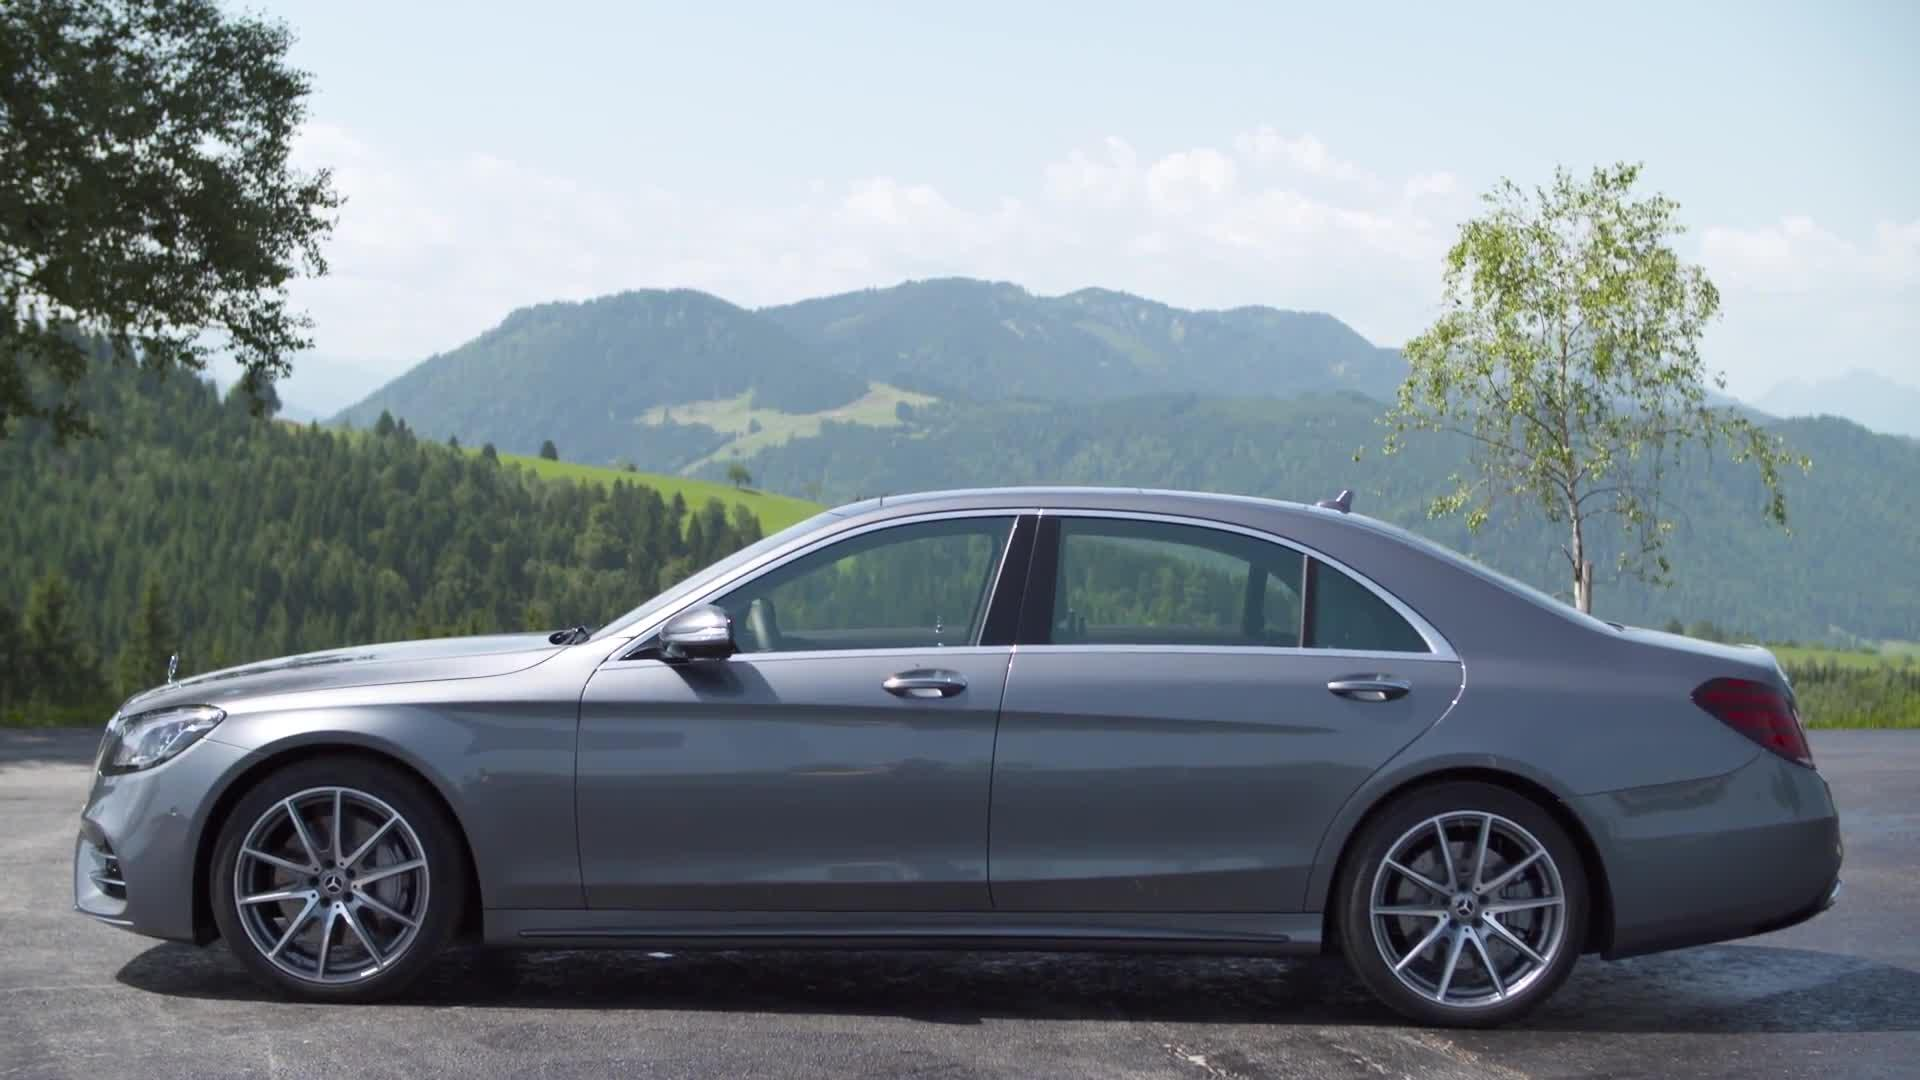 Mercedes-Benz S 500 Exterior Design in Selenite grey metallic